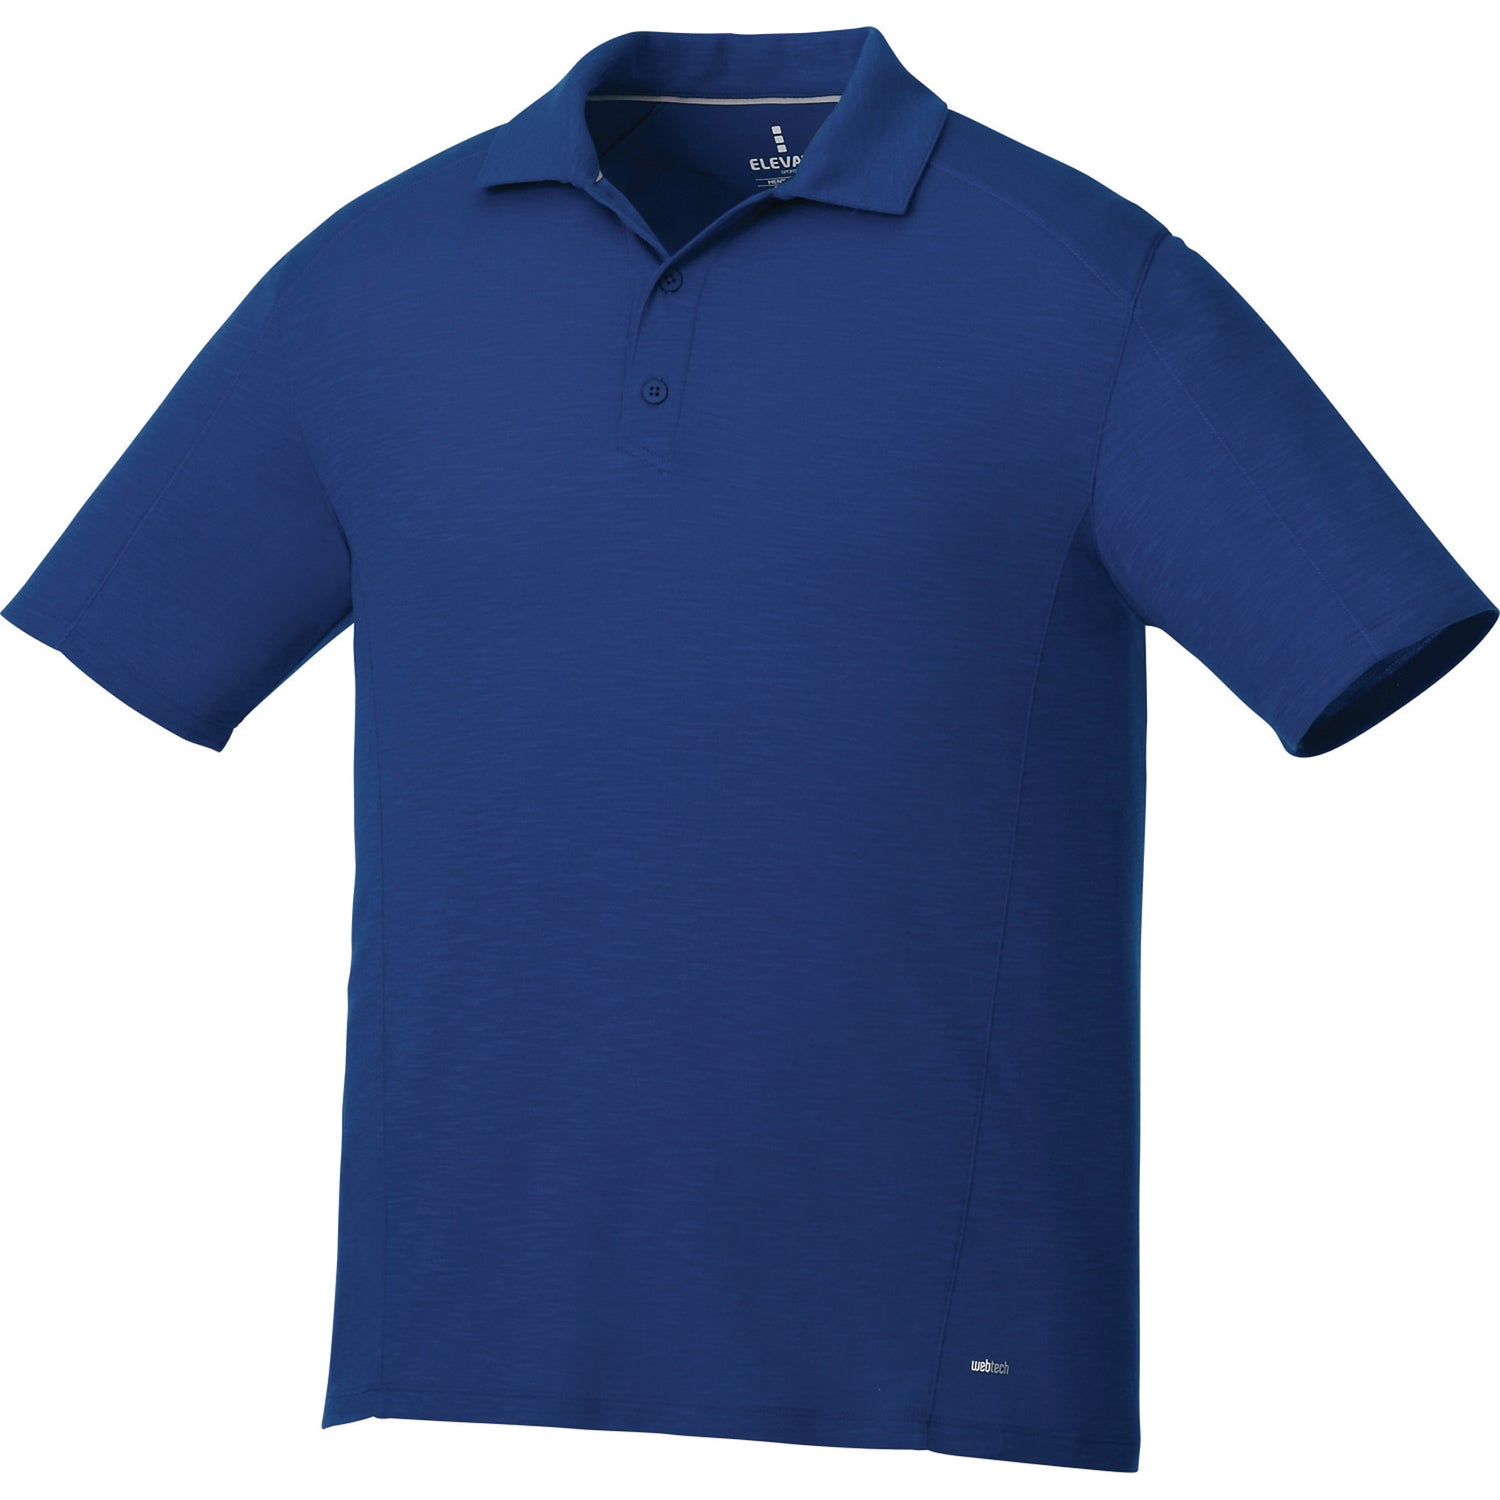 Jepson Short Sleeve Polo Shirt By Trimark Men 39 S